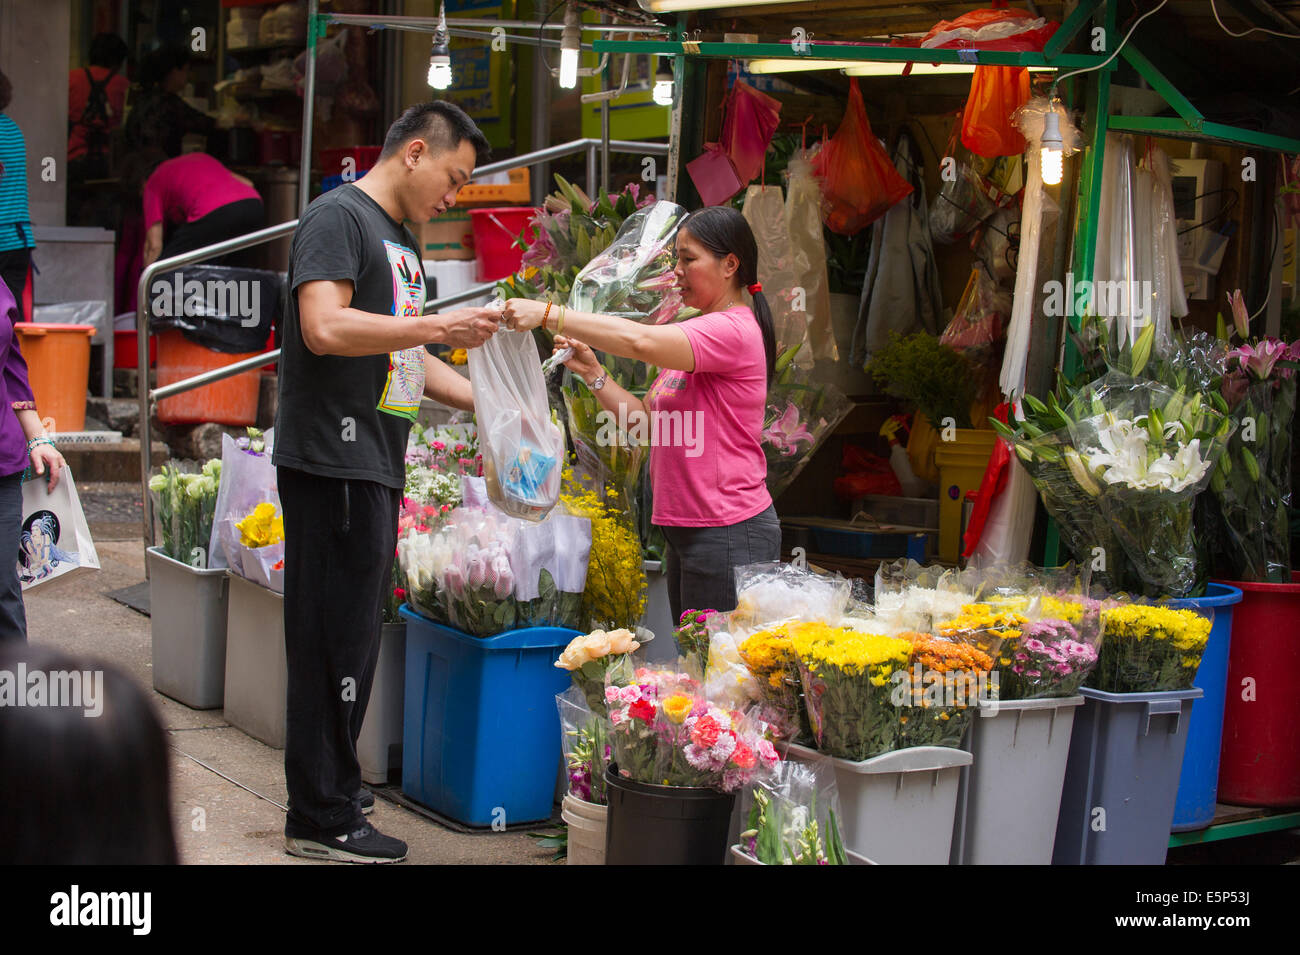 Man buying flowers from a Hong Kong street flower stand. - Stock Image